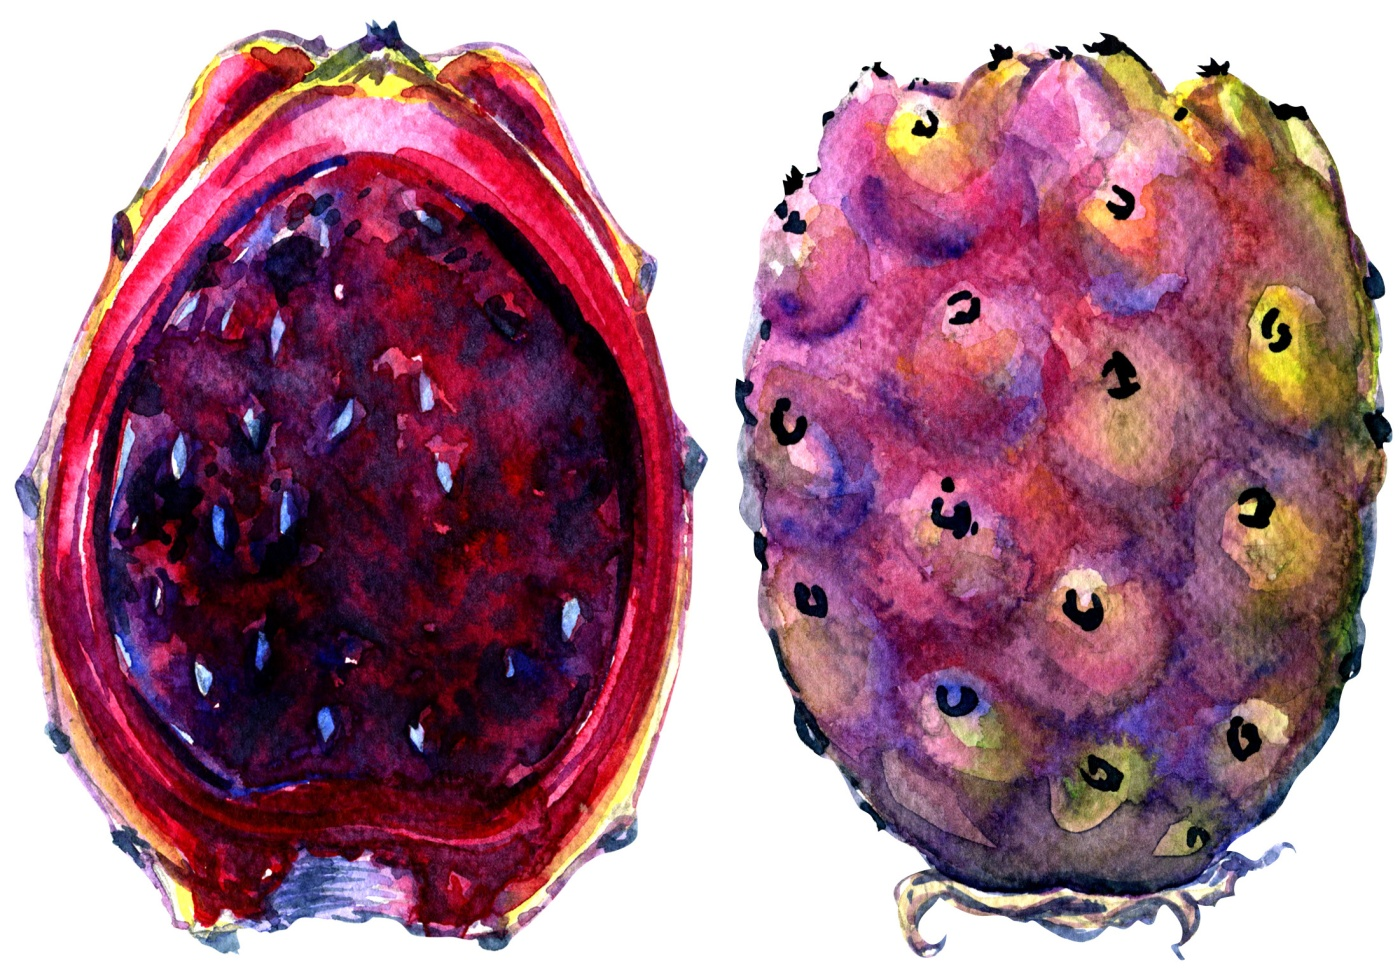 Fruits of Opuntia ficus-indica, red cactus pears on white